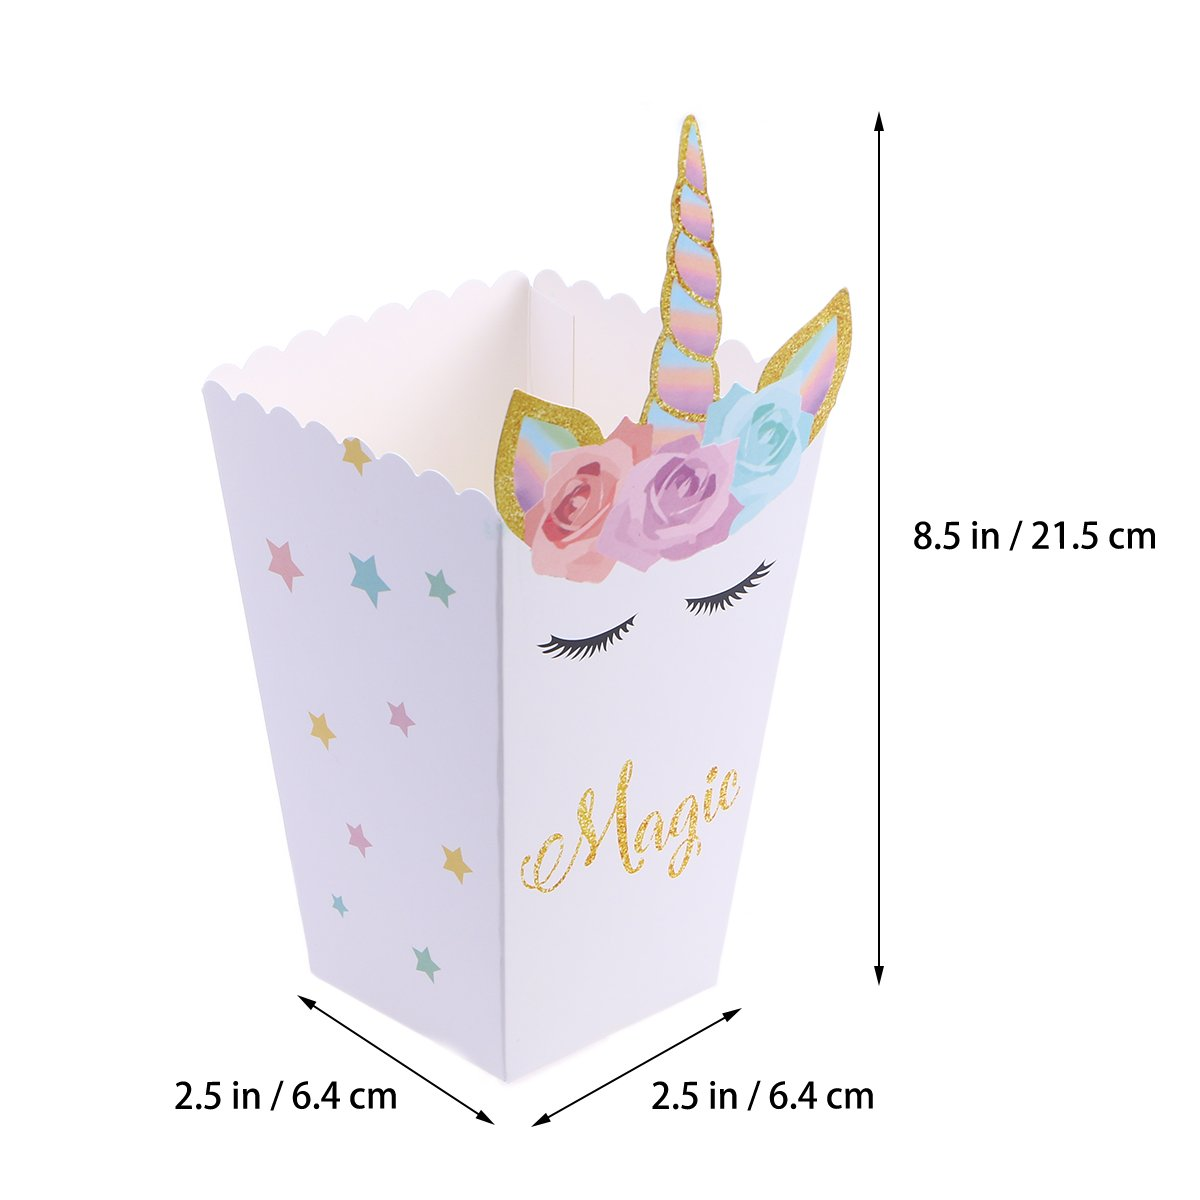 Amazon.com: TOYMYTOY Unicorn Popcorn Boxes Paper Popcorn Bag Theme Party Favor Supplies Decoration Set of 12: Toys & Games